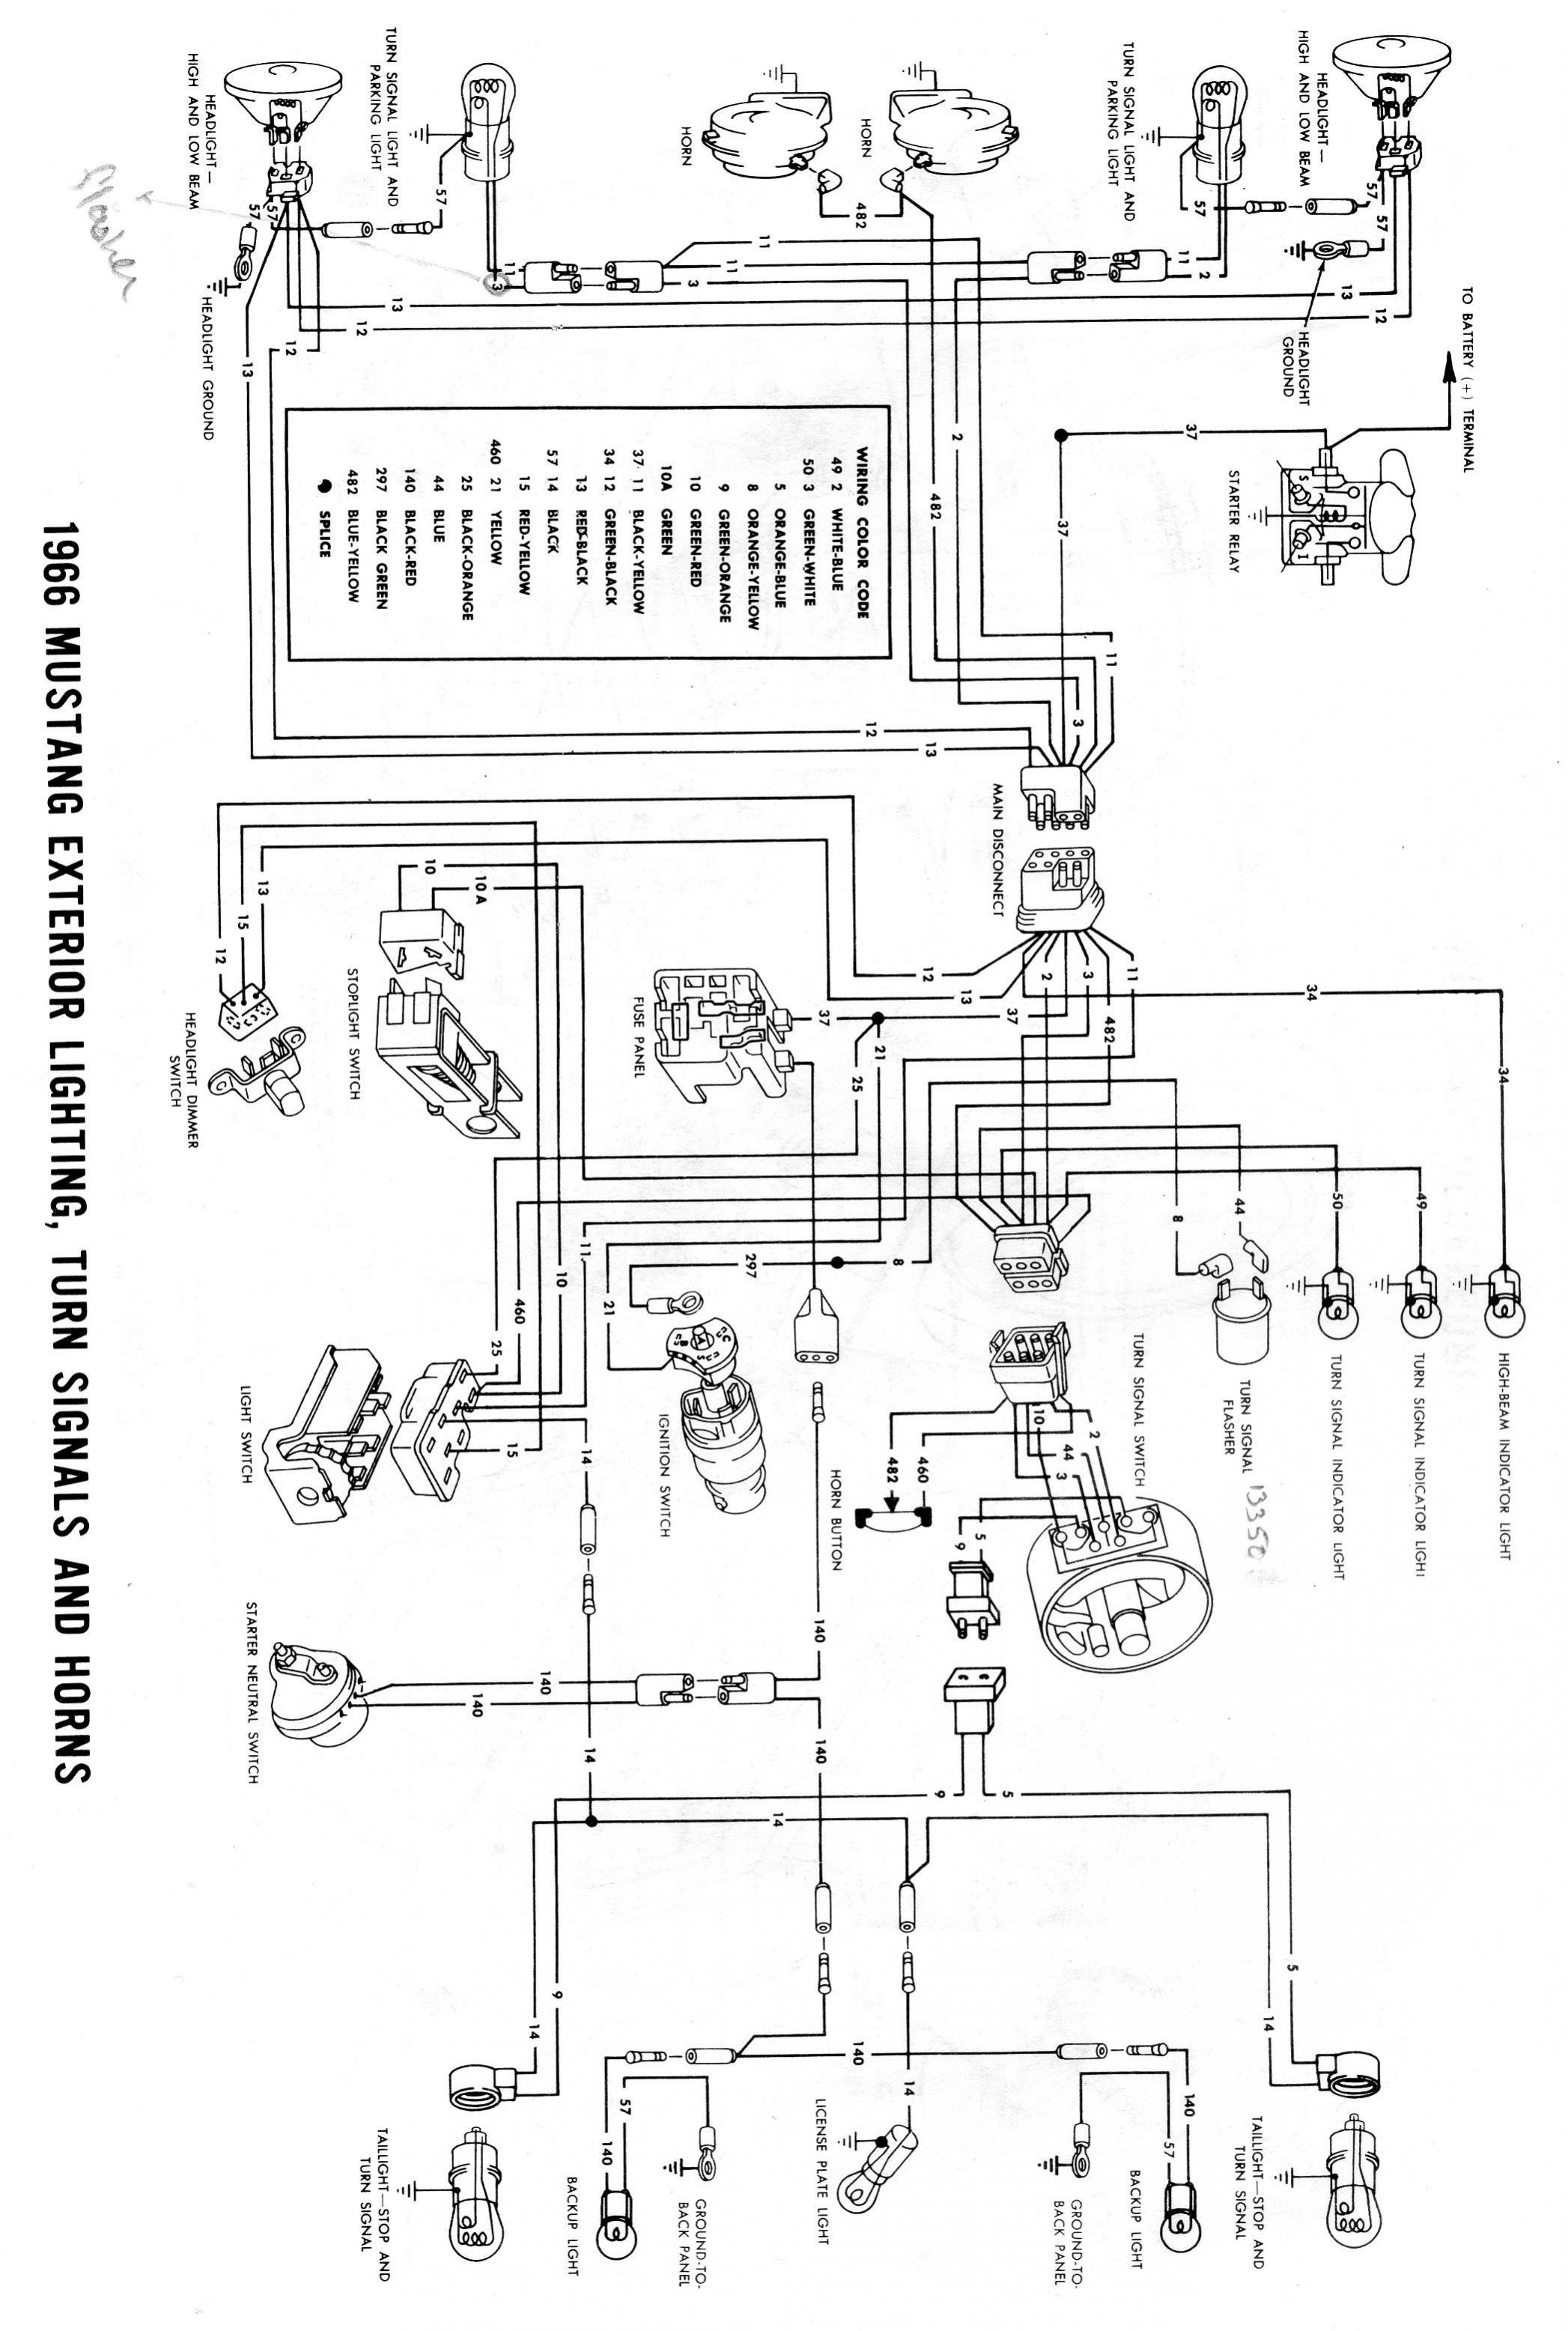 1984 ford wiring diagram online circuit wiring diagram u2022 rh electrobuddha co uk  1984 ford bronco 2 wiring diagram